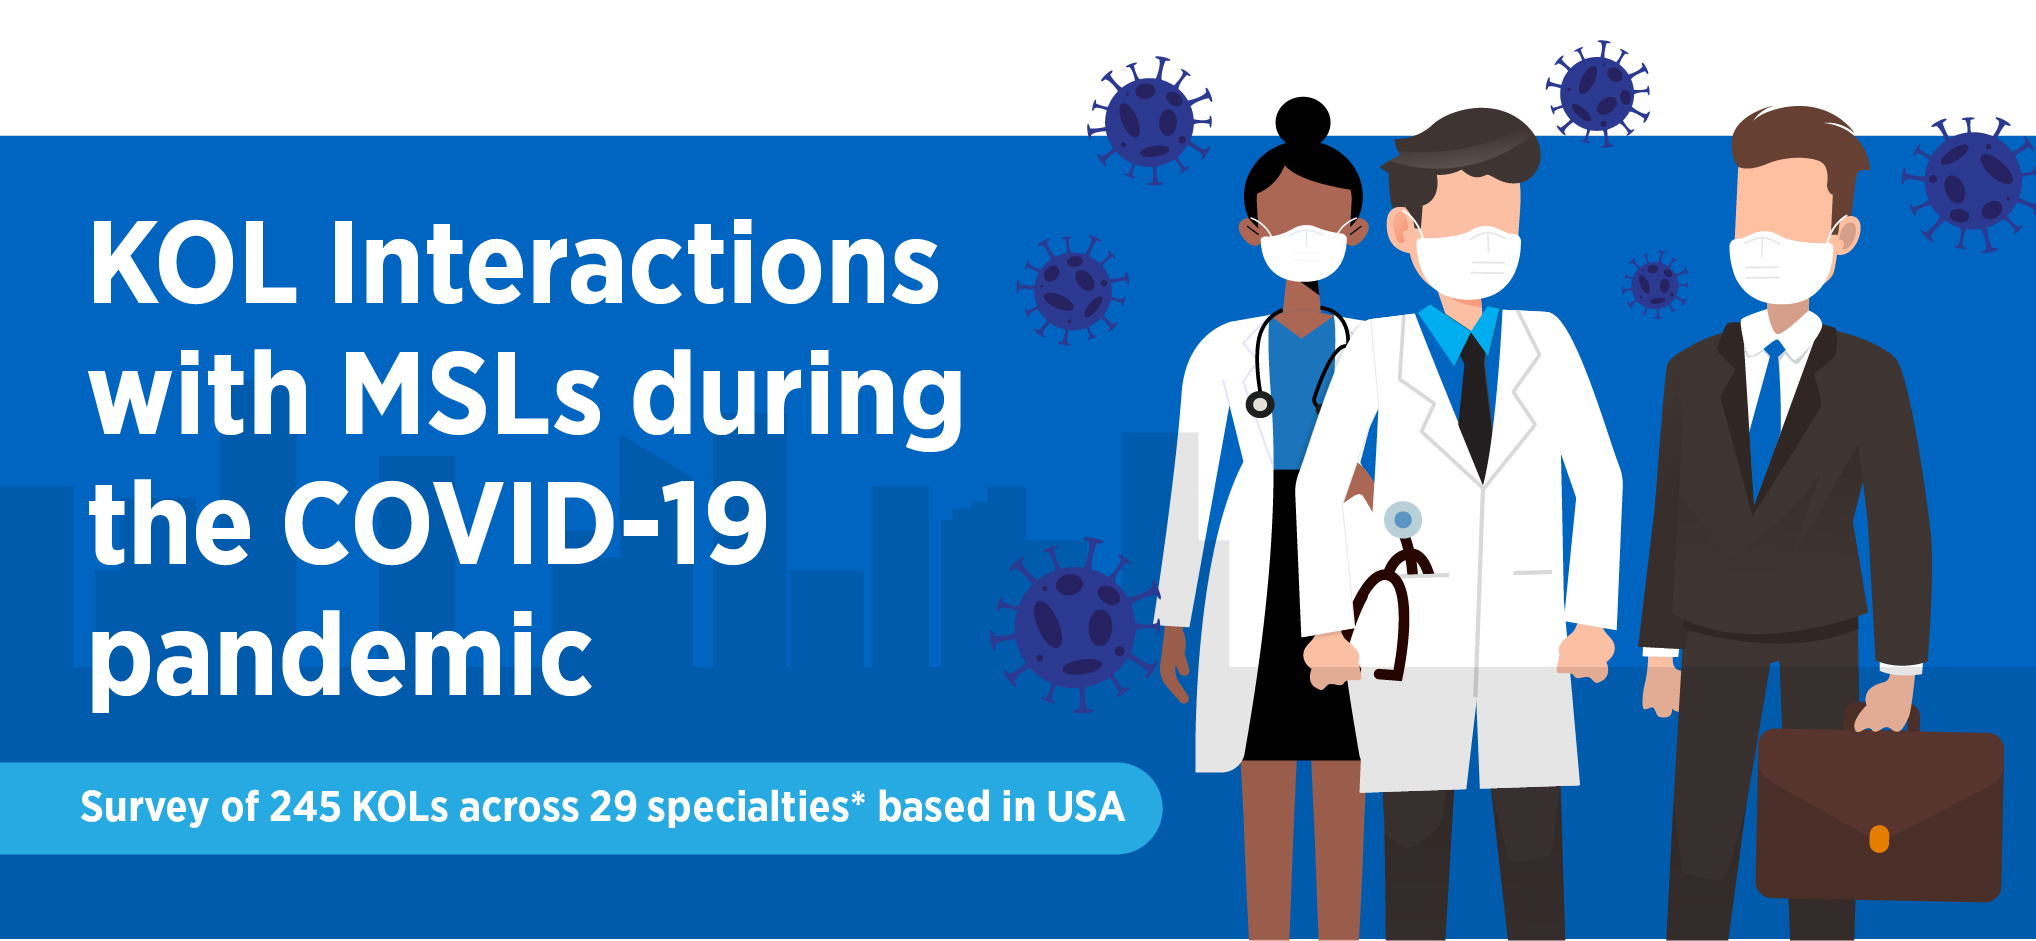 KOL Interactions with MSLs during the COVID-19 Pandemic Follow-Up Study Infographic.